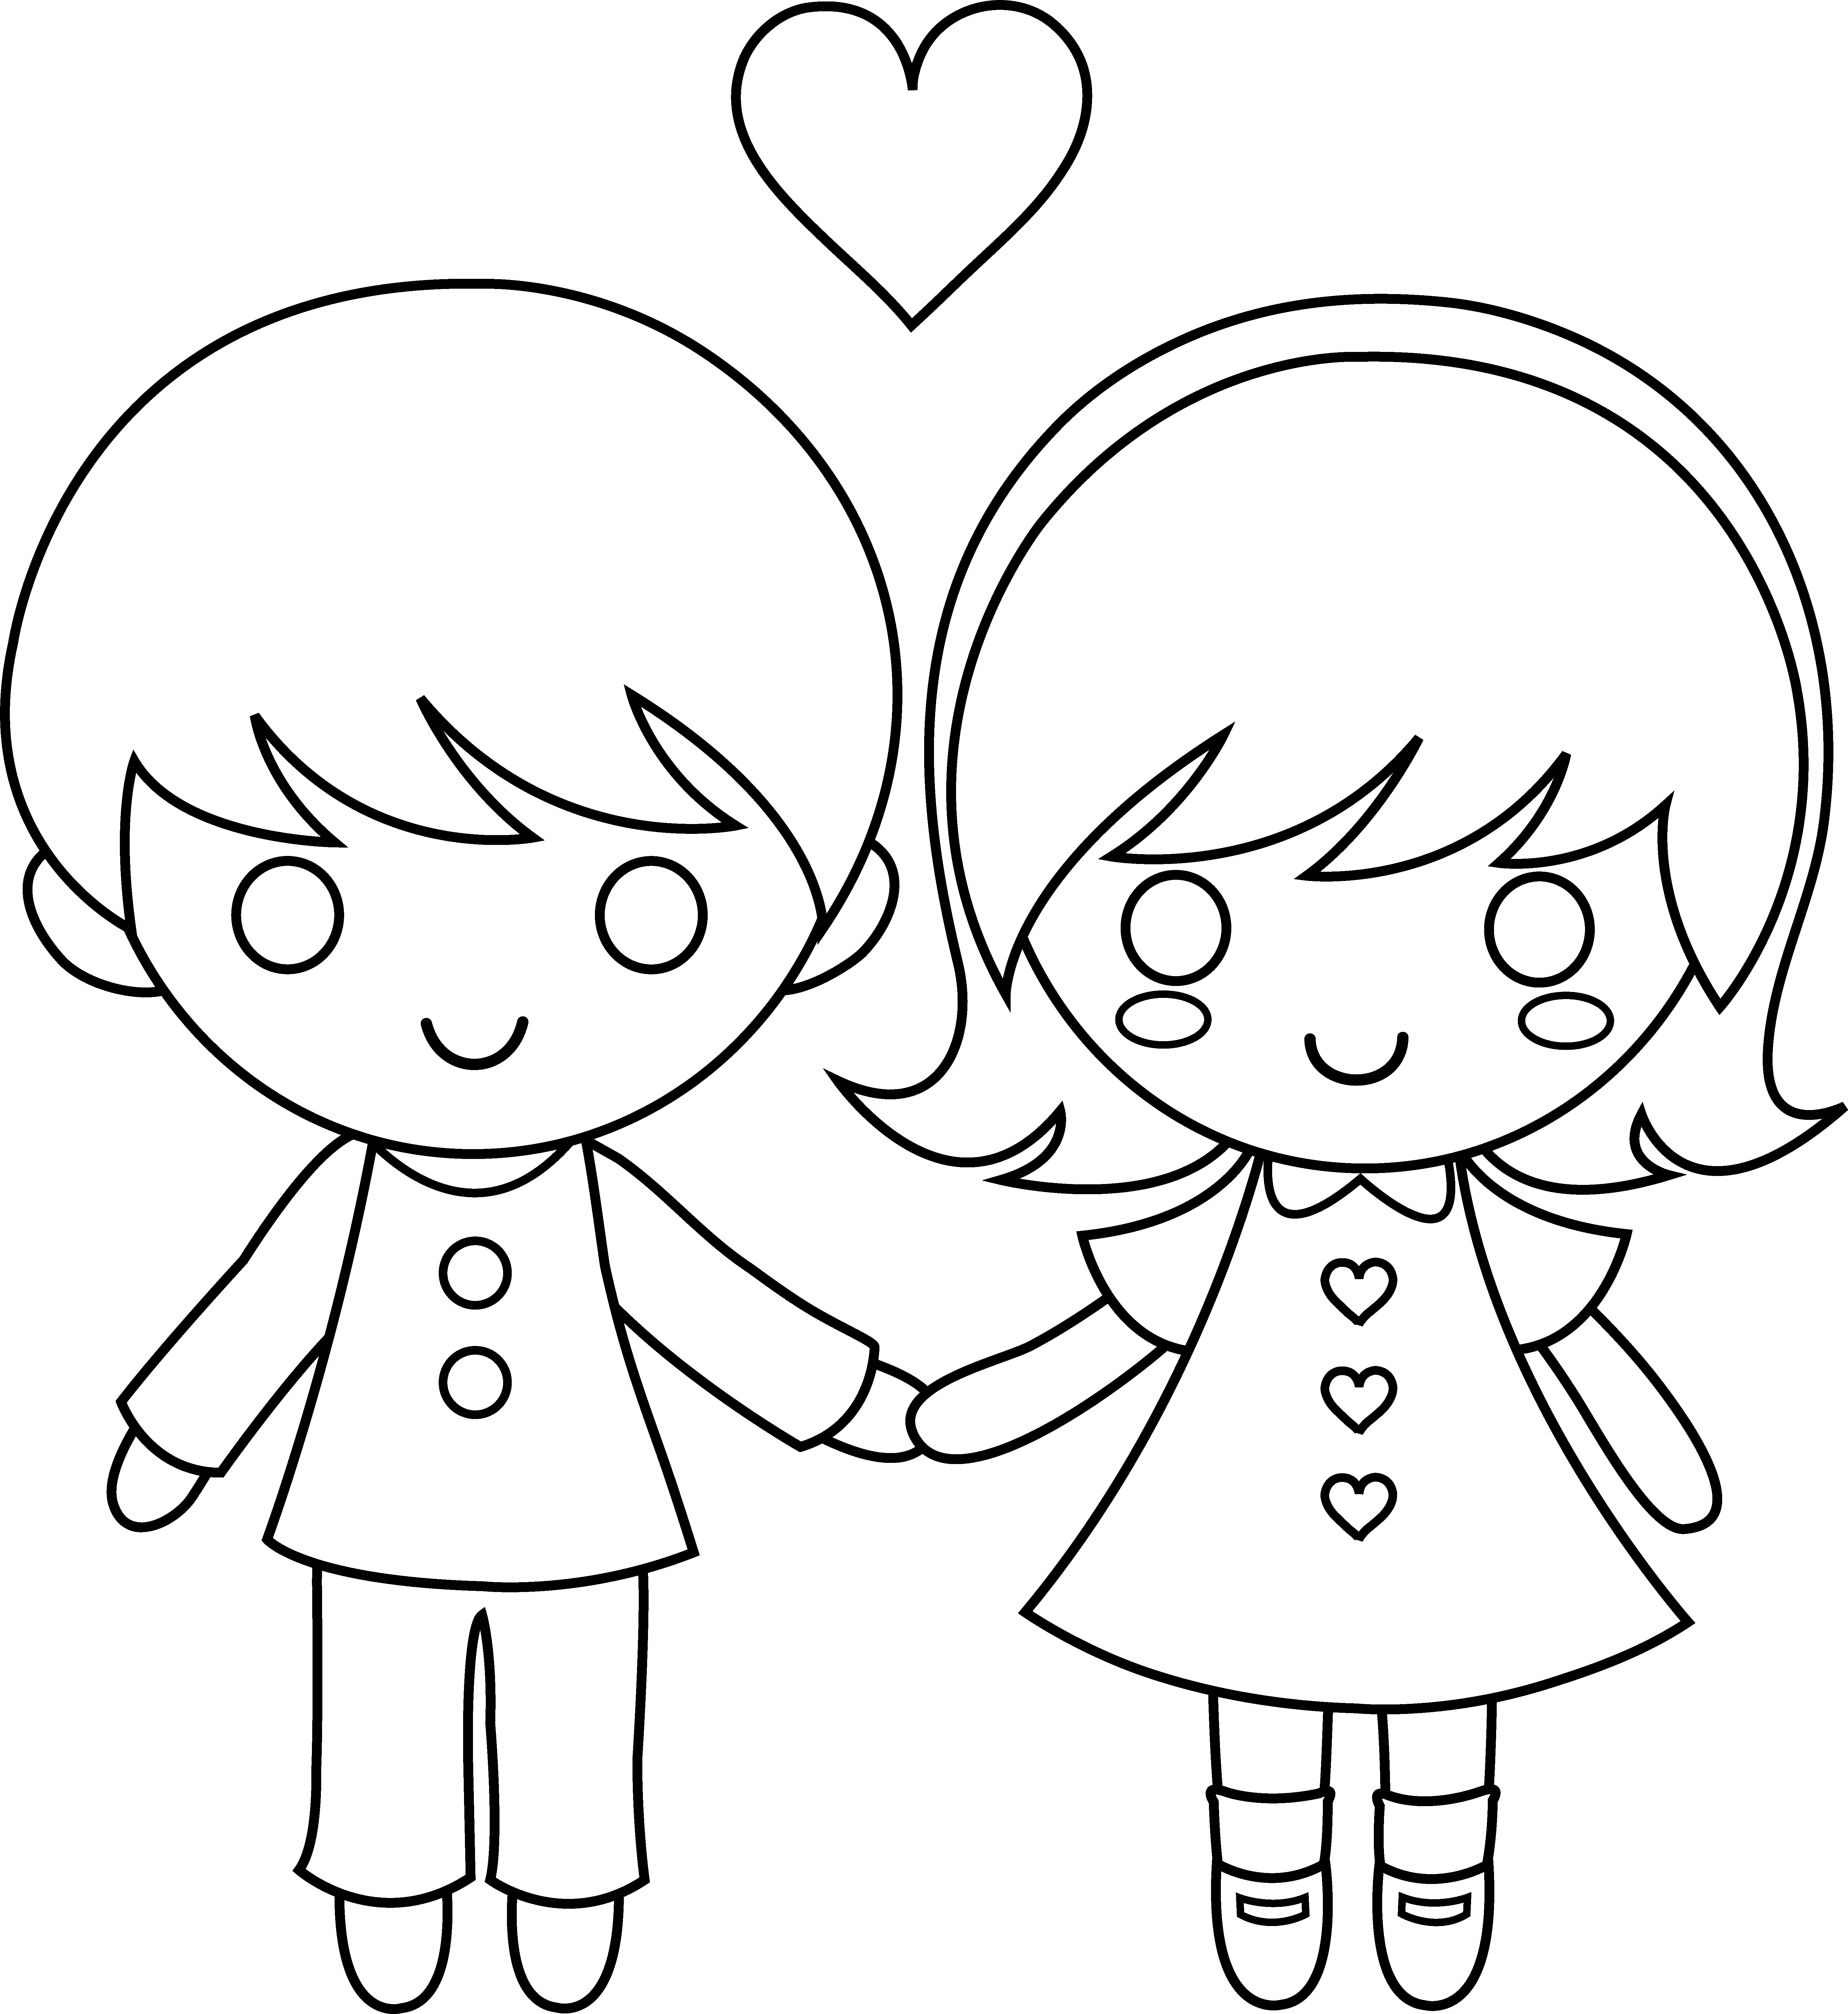 6197x6753 Draw Cartoon Boy And Girl Holding Hands Anime Boy And Girl Holding